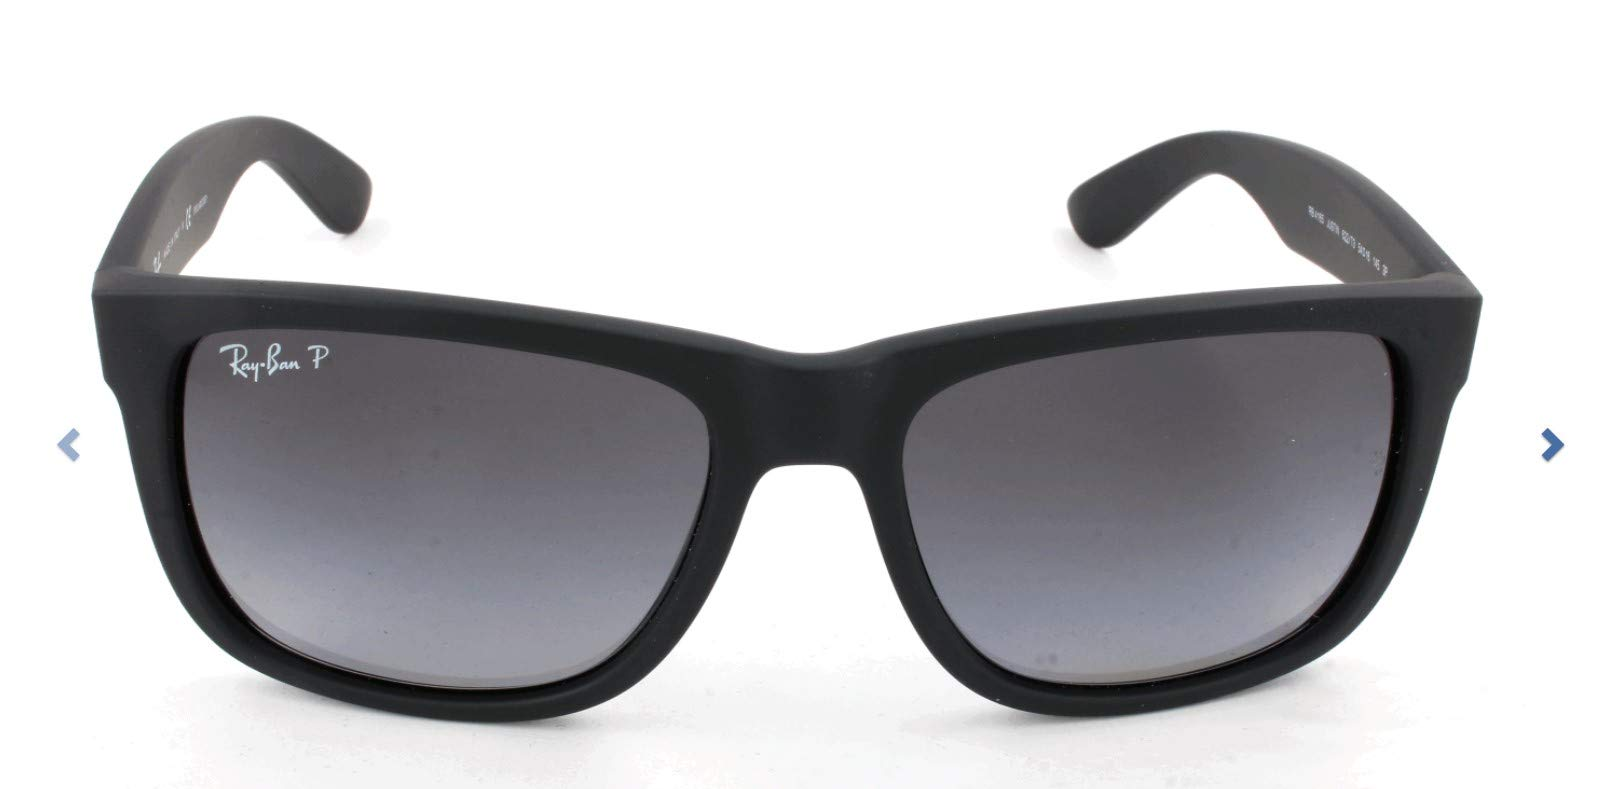 Ray-Ban RB4165 Justin Rectangular Sunglasses, Black Rubber/Polarized Grey Gradient, 55 mm by Ray-Ban